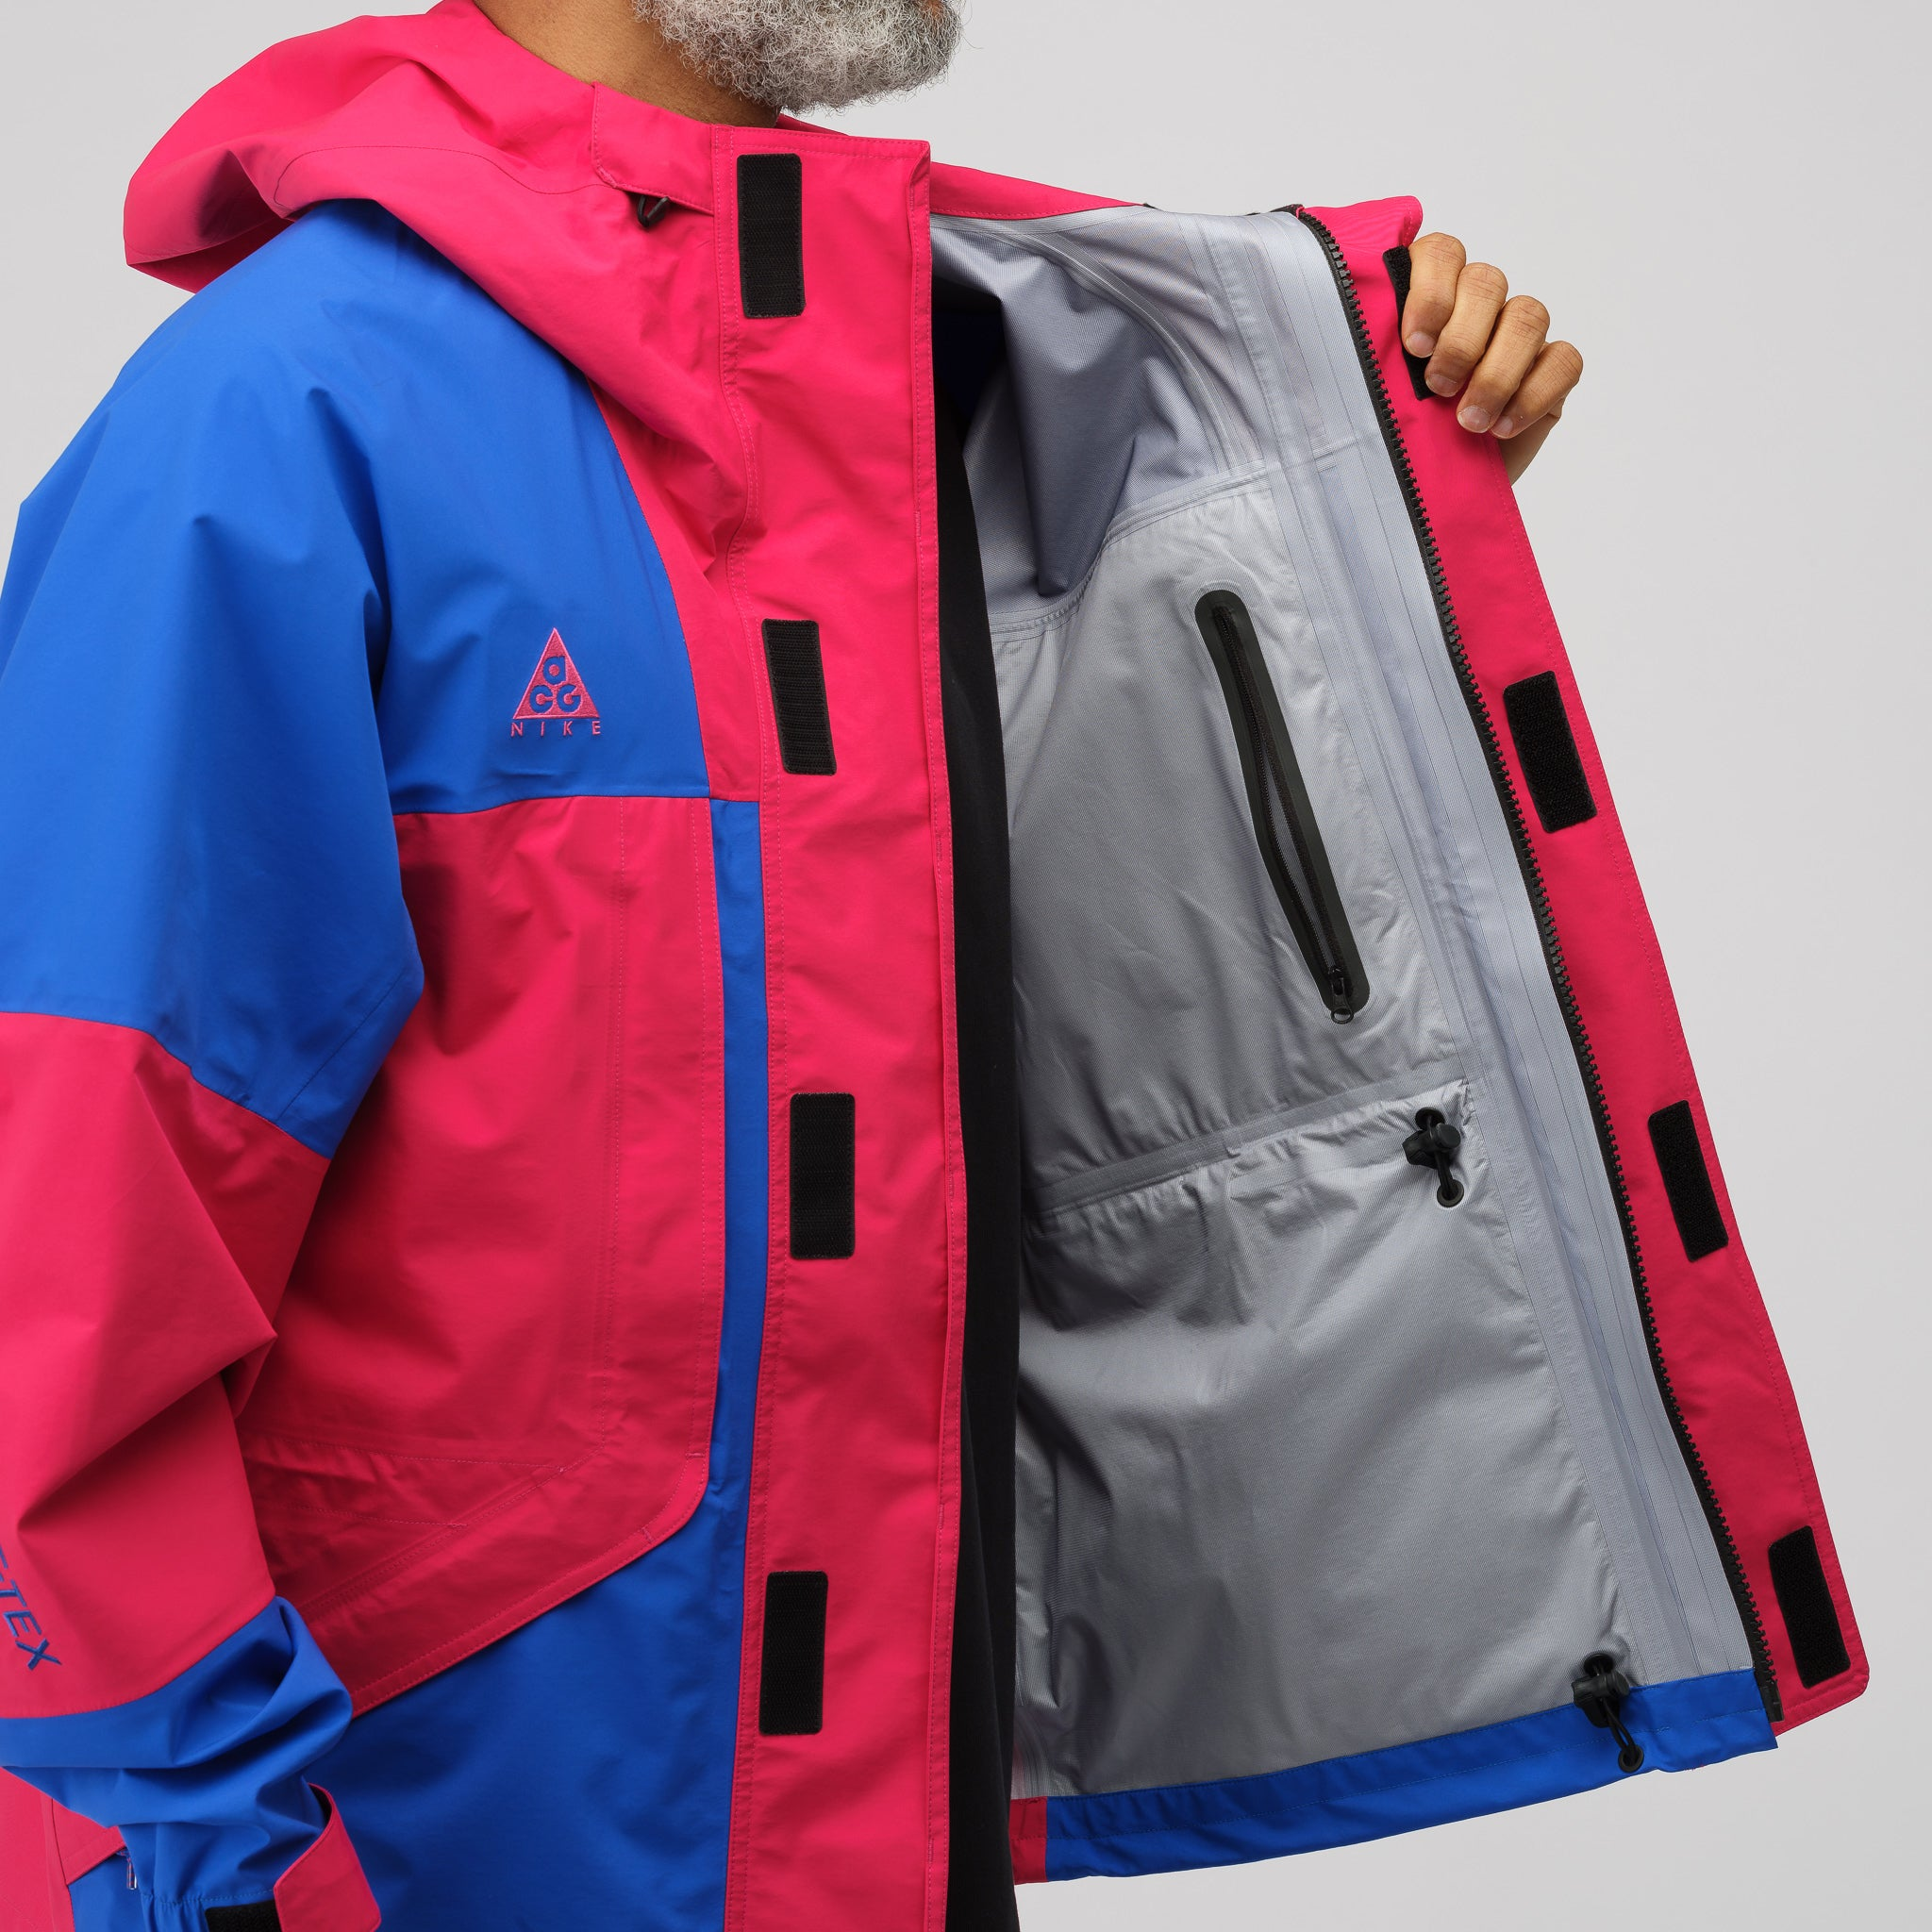 ACG GoreTex Jacket in Pink/Royal Blue